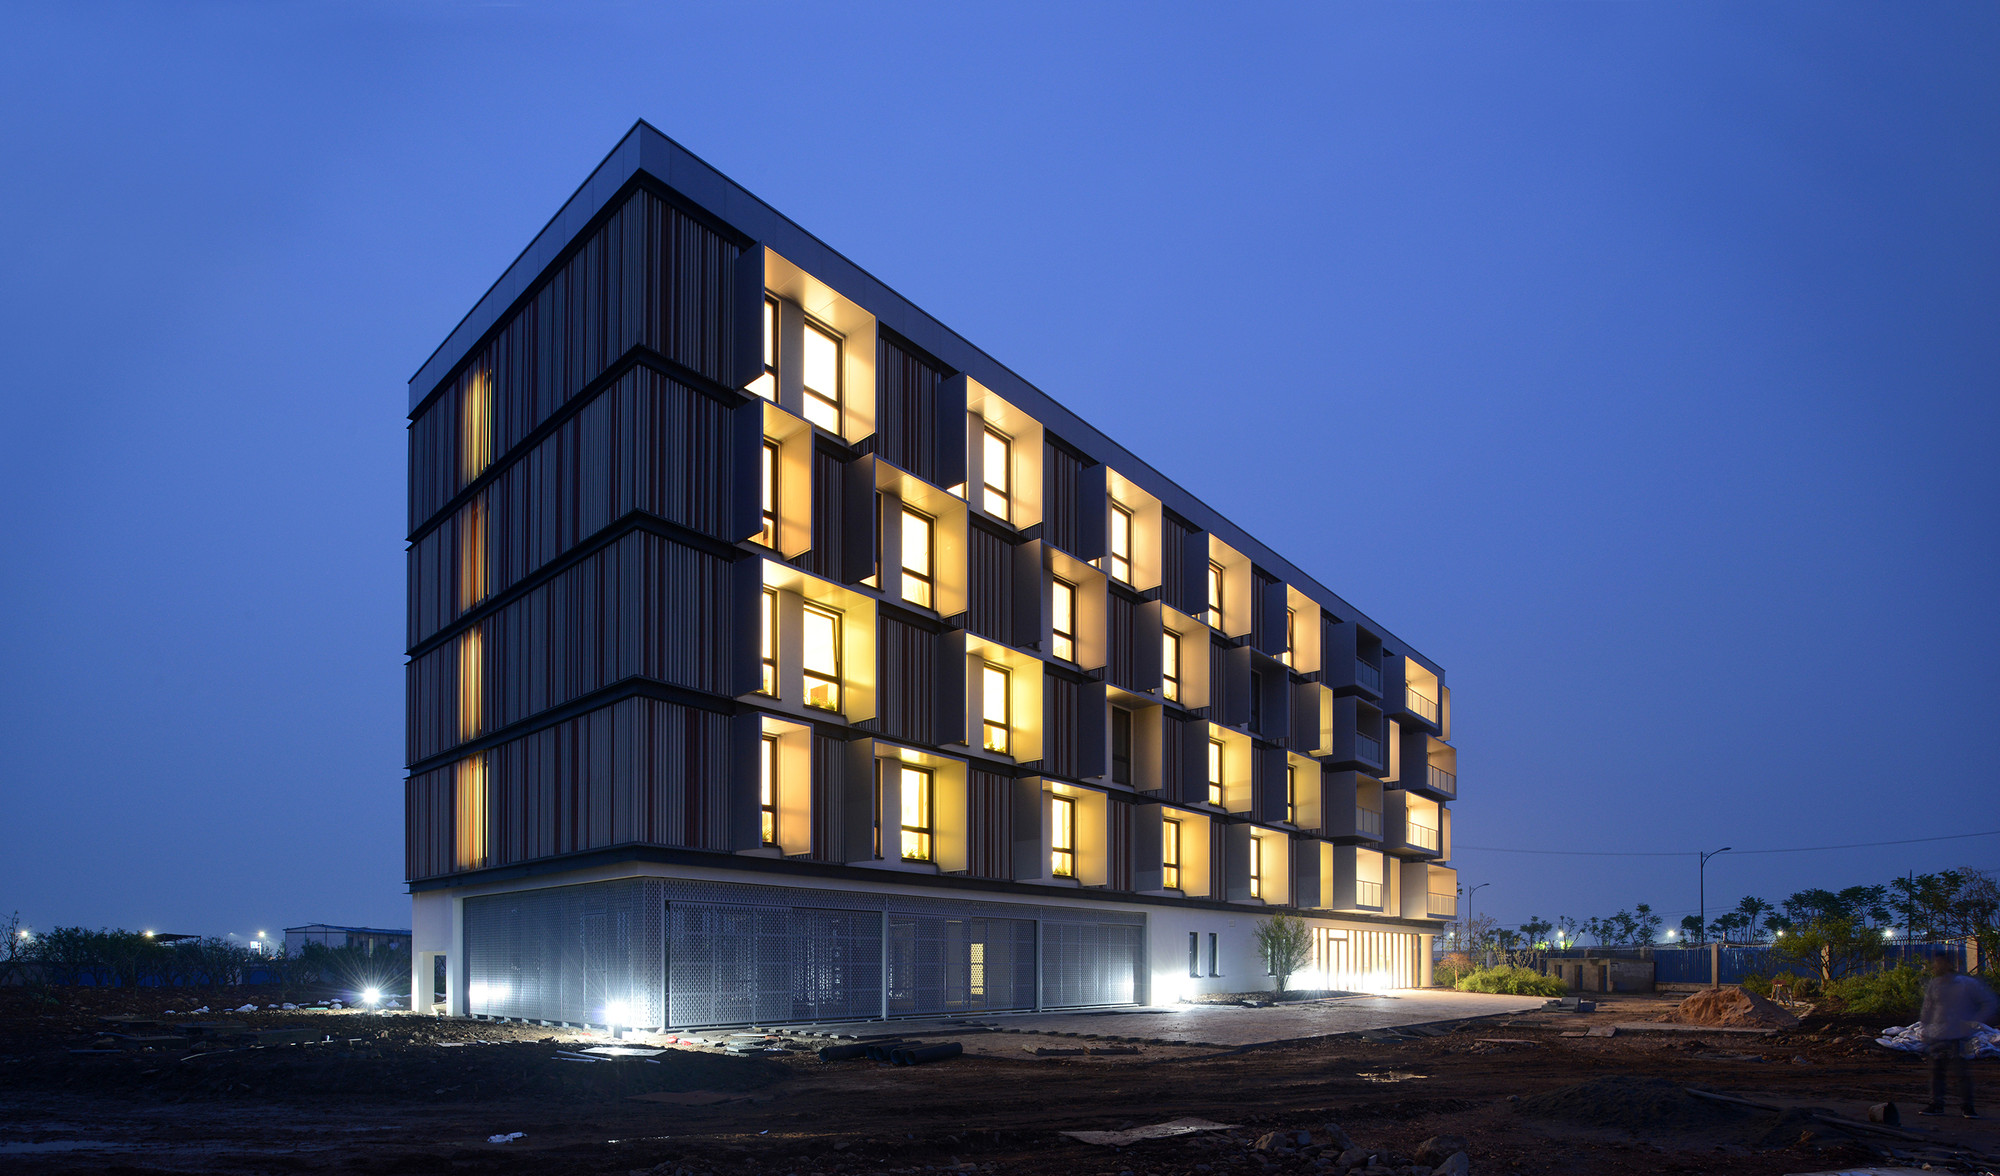 Gallery of passive house bruck peter ruge architekten 11 - Peter ruge architekten ...